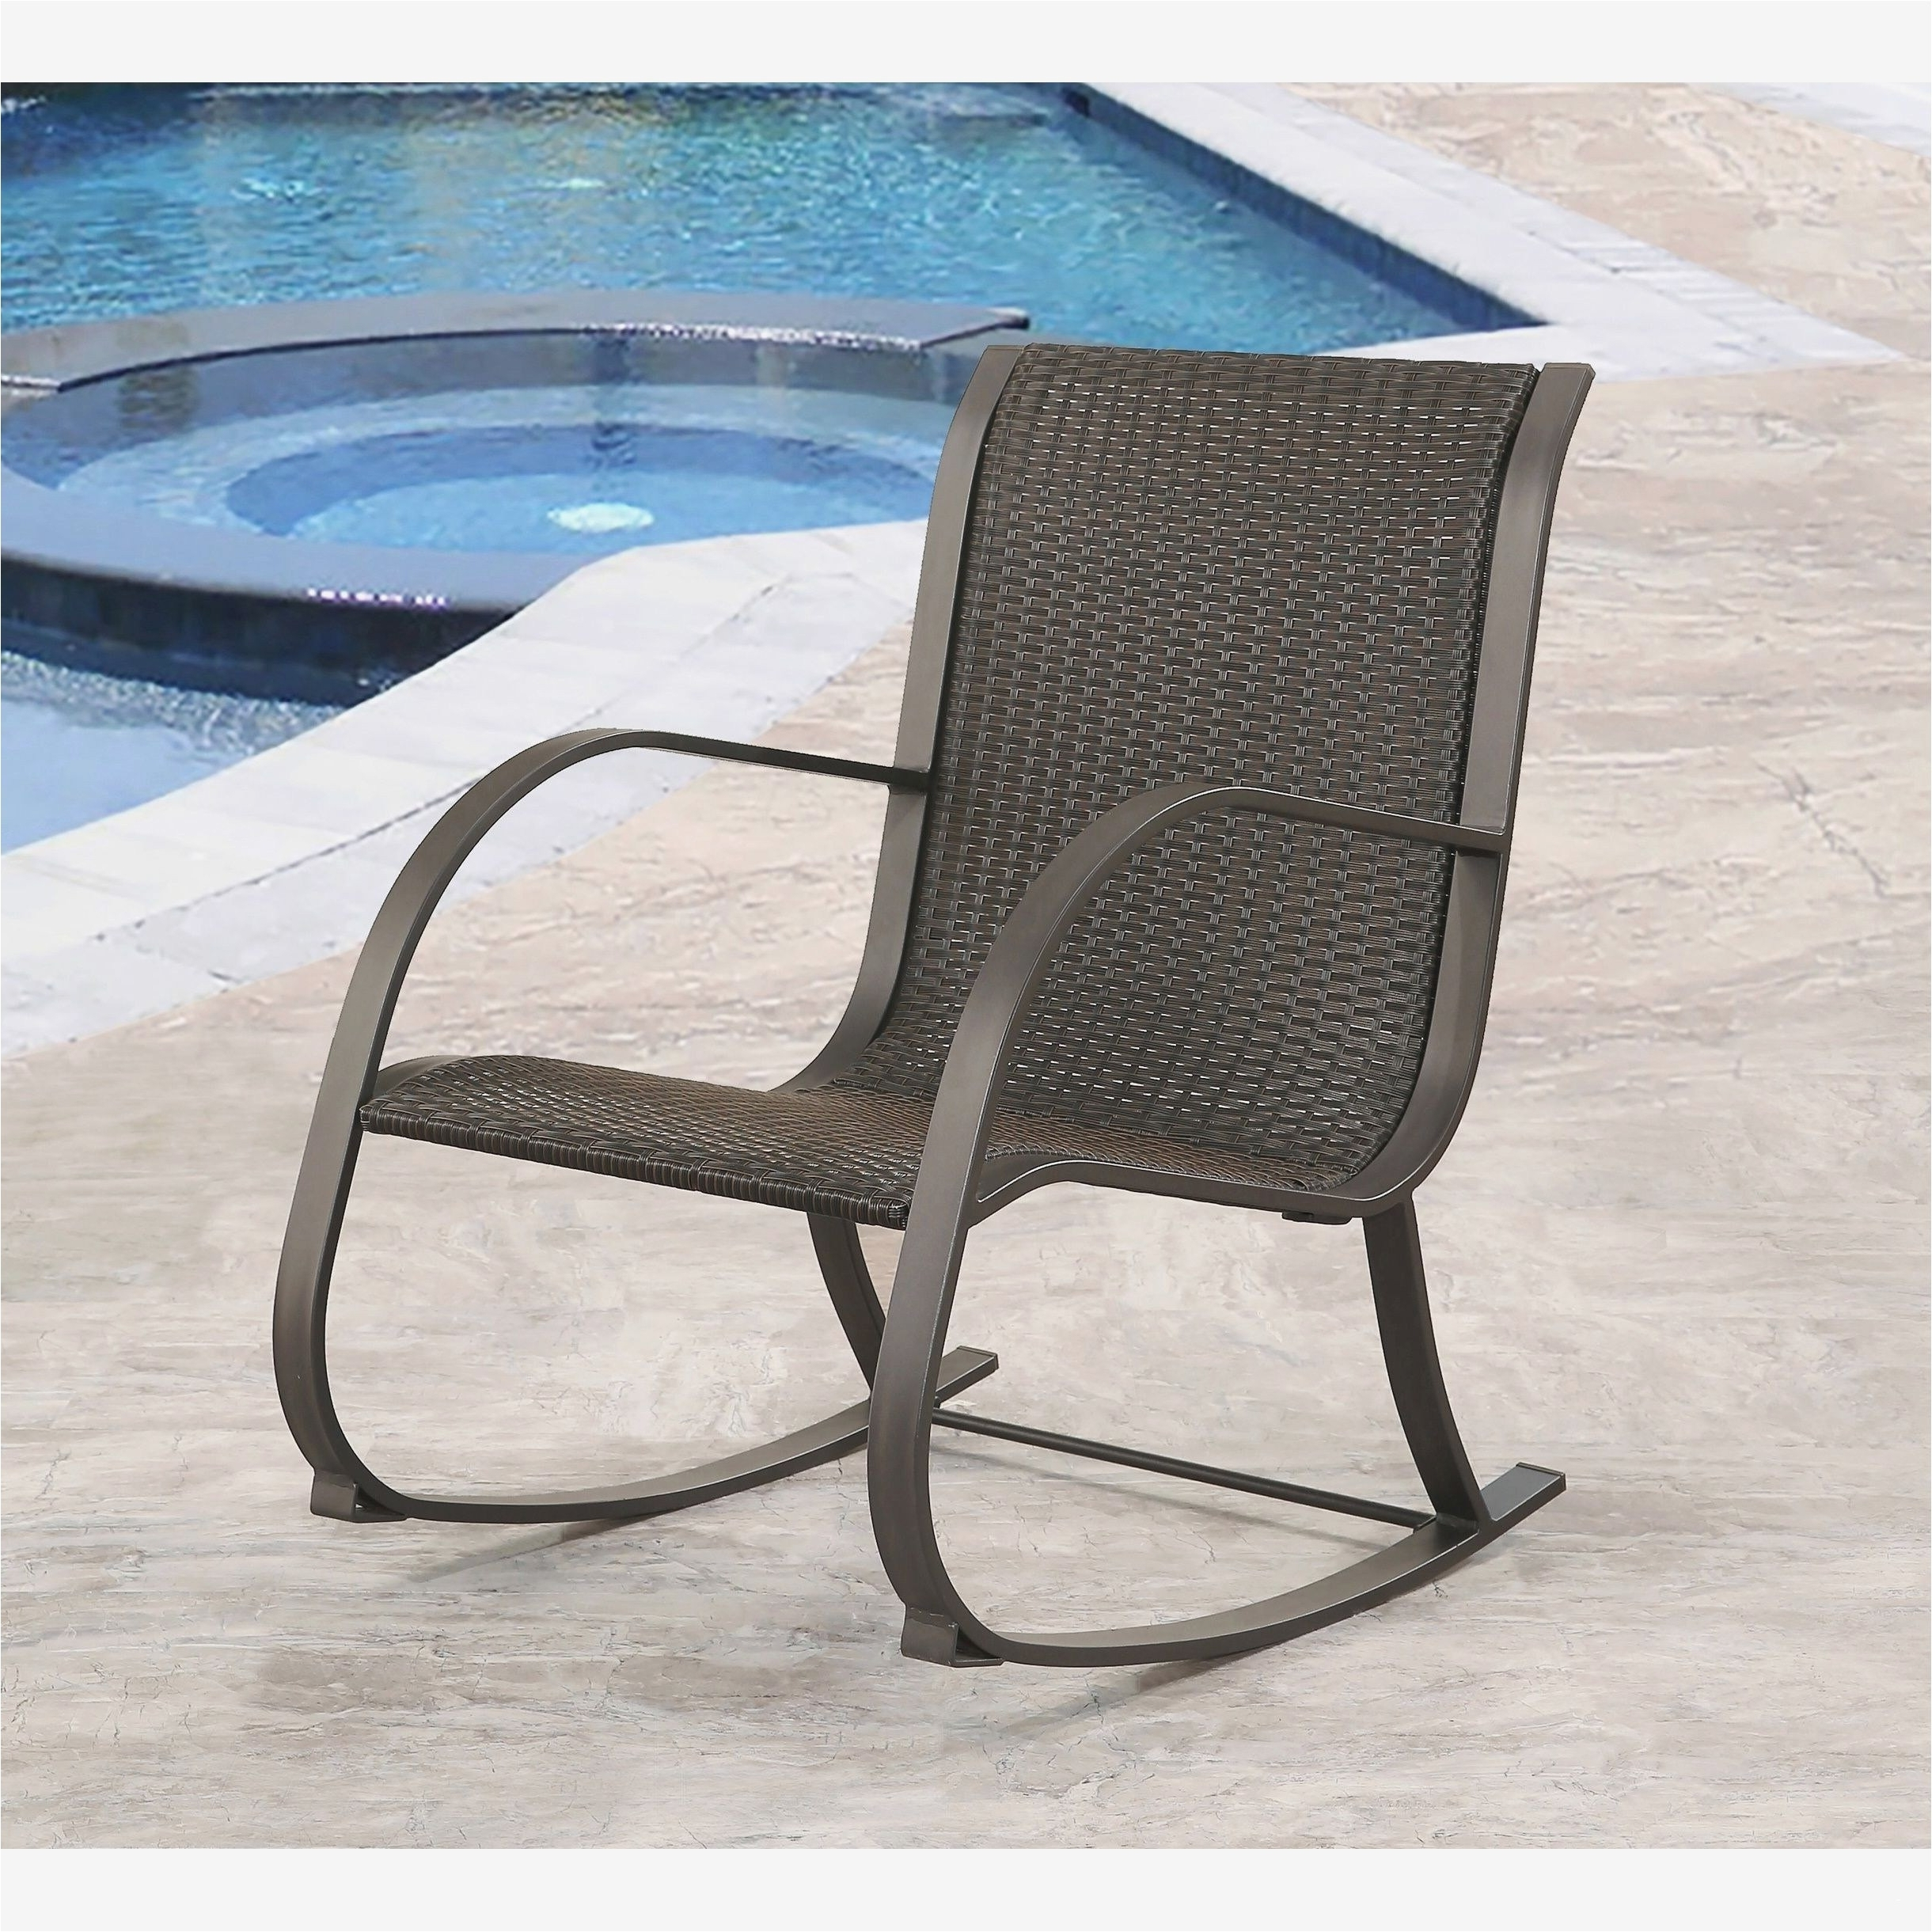 Modern Patio Rocking Chairs Intended For Popular Awesome Rocking Chairs Patio Furniture Bellevuelittletheatre Ideas (View 10 of 15)